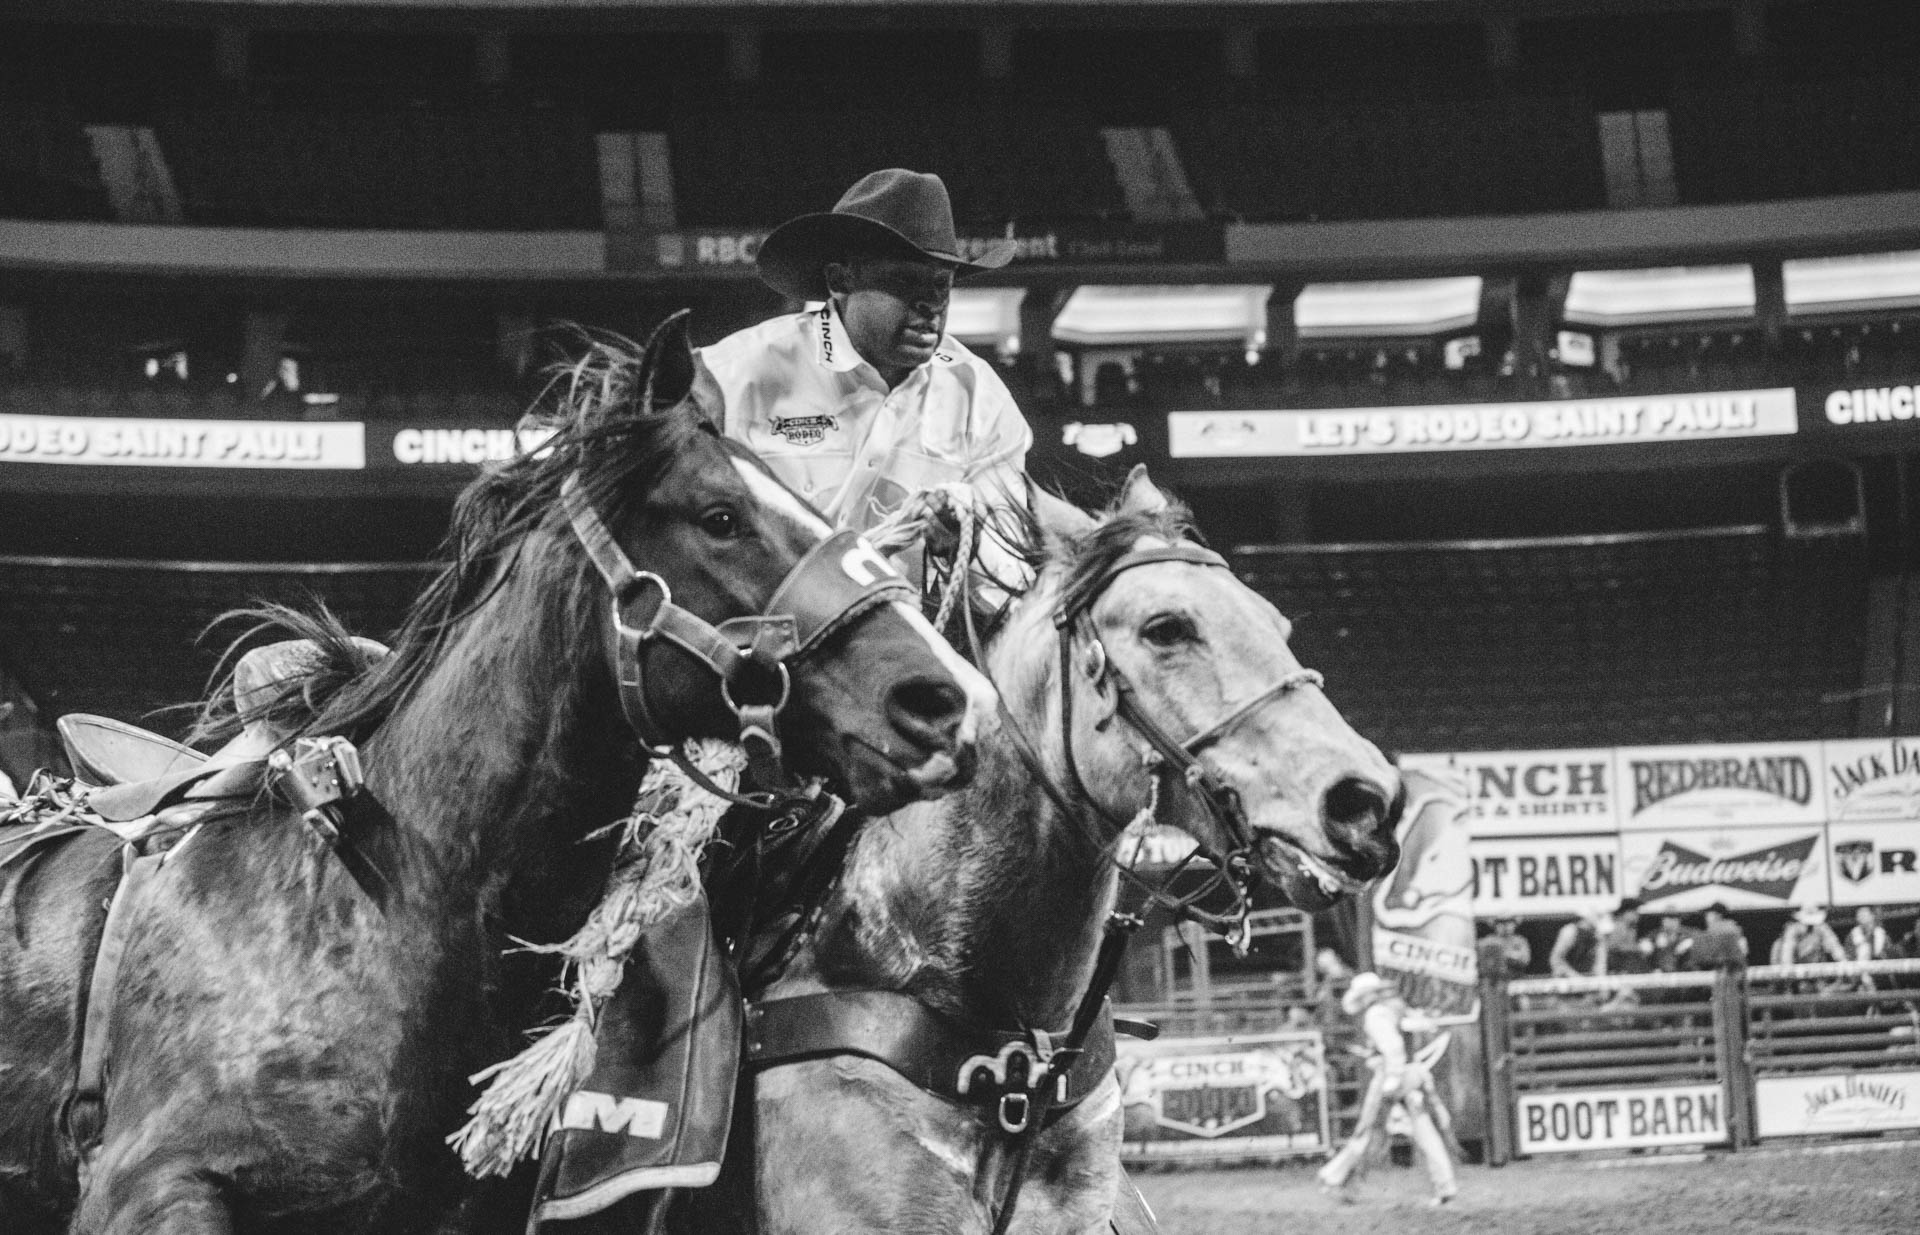 clinch-worlds-toughest-rodeo-9138